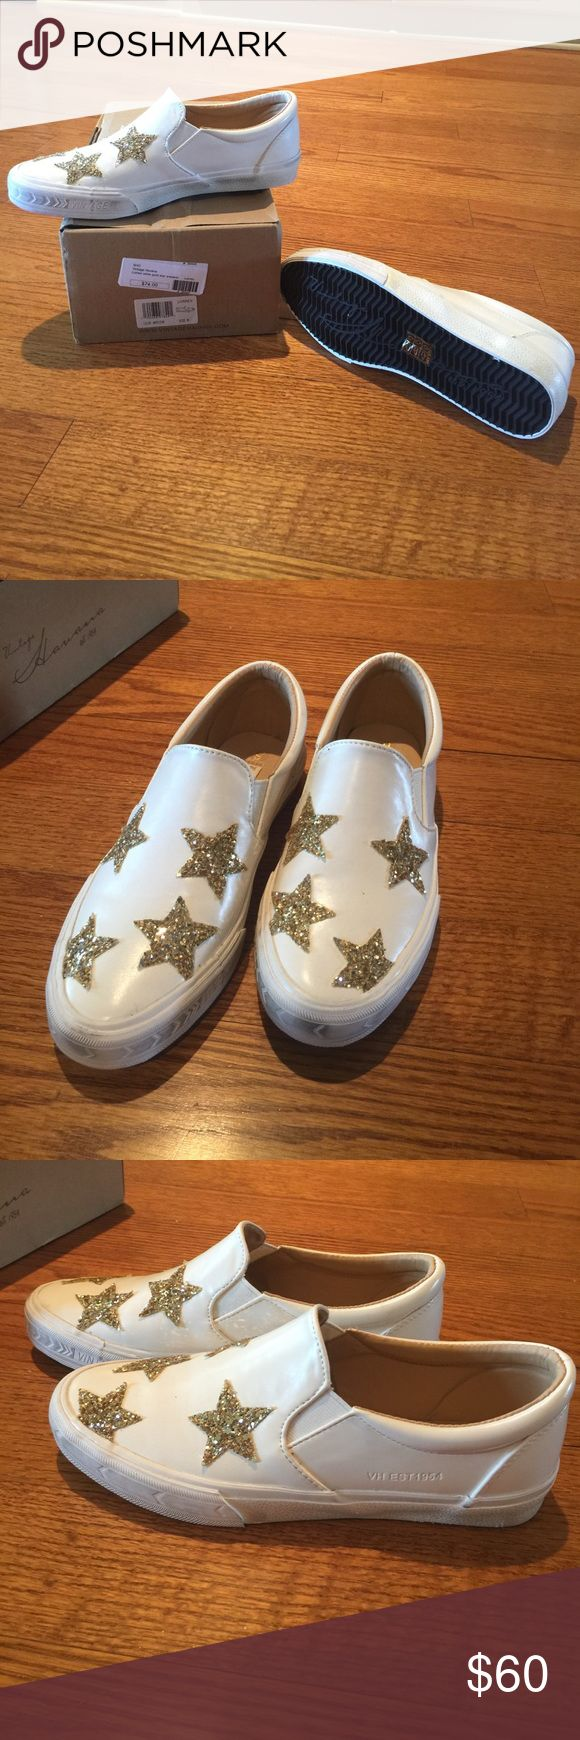 Vintage Havana Star Slip on Sneaker Last chance for these cuties!  If they don't sell this time I'm putting them back in my rotation😉Truth!  These are NOT dirty on the front of shoes, I bought them like that!  Happy Poshing⭐️⭐️⭐️ Vintage Havana Shoes